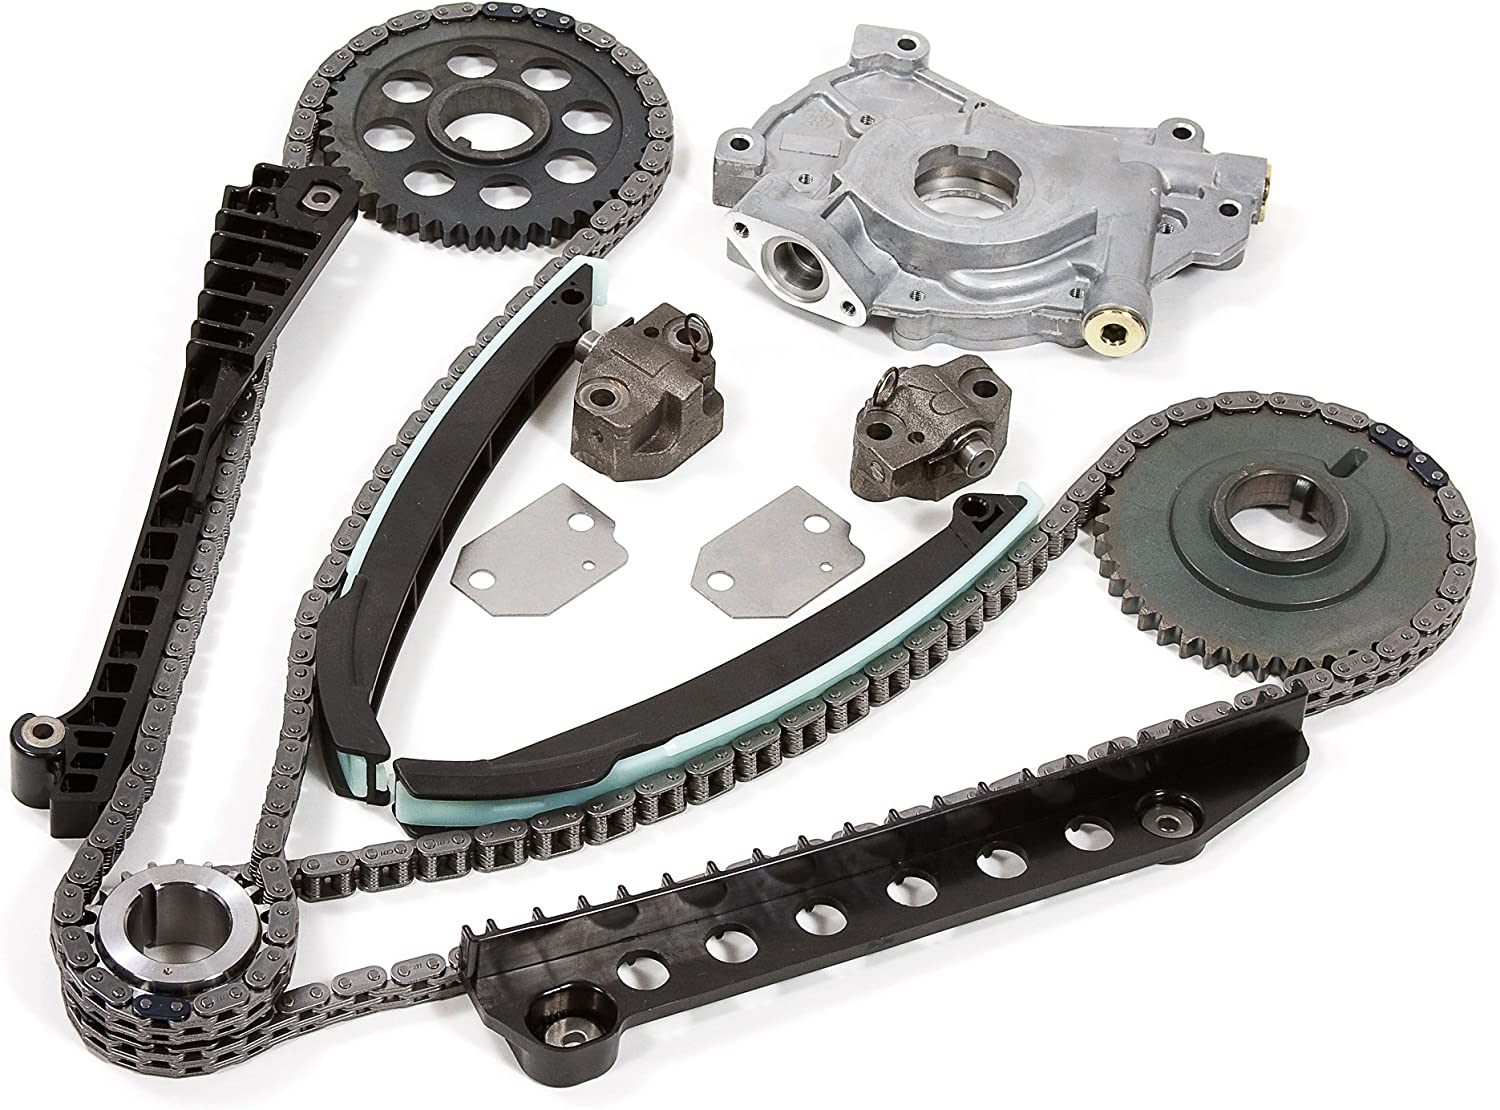 Evergreen TK6054LOP Fits 02-04 Ford F150 F250 E150 E250 Expedition Excursion 5.4 SOHC 16 Valves Timing Chain Kit Oil Pump 81TyvC0tM8LSL1500_